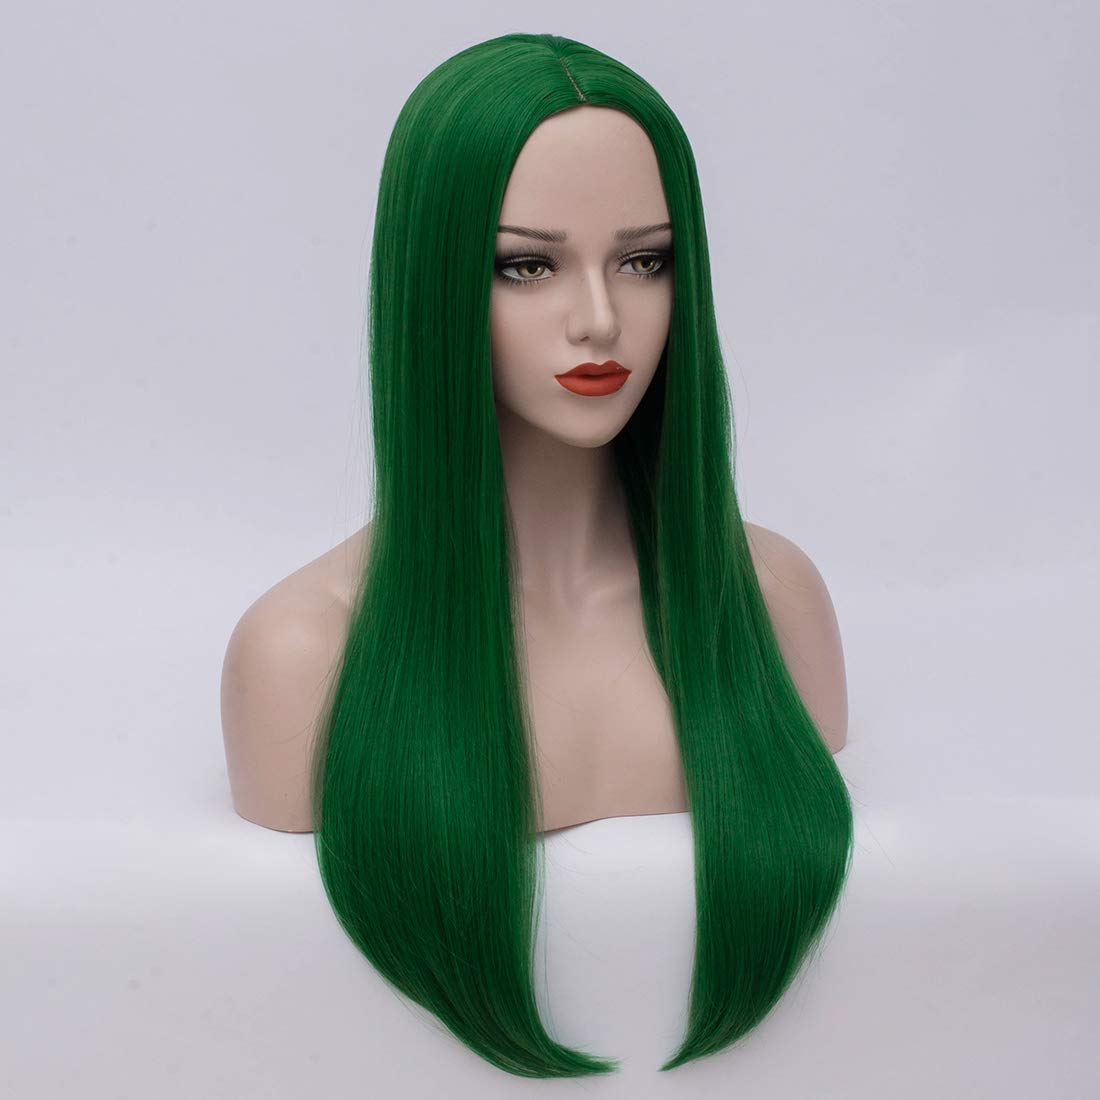 Bopocoko Green Wigs for Women Short Straight Ombre Green Yellow Hair Wigs with Dark Roots Natural Looking Daily Party Cosplay Wig BU161